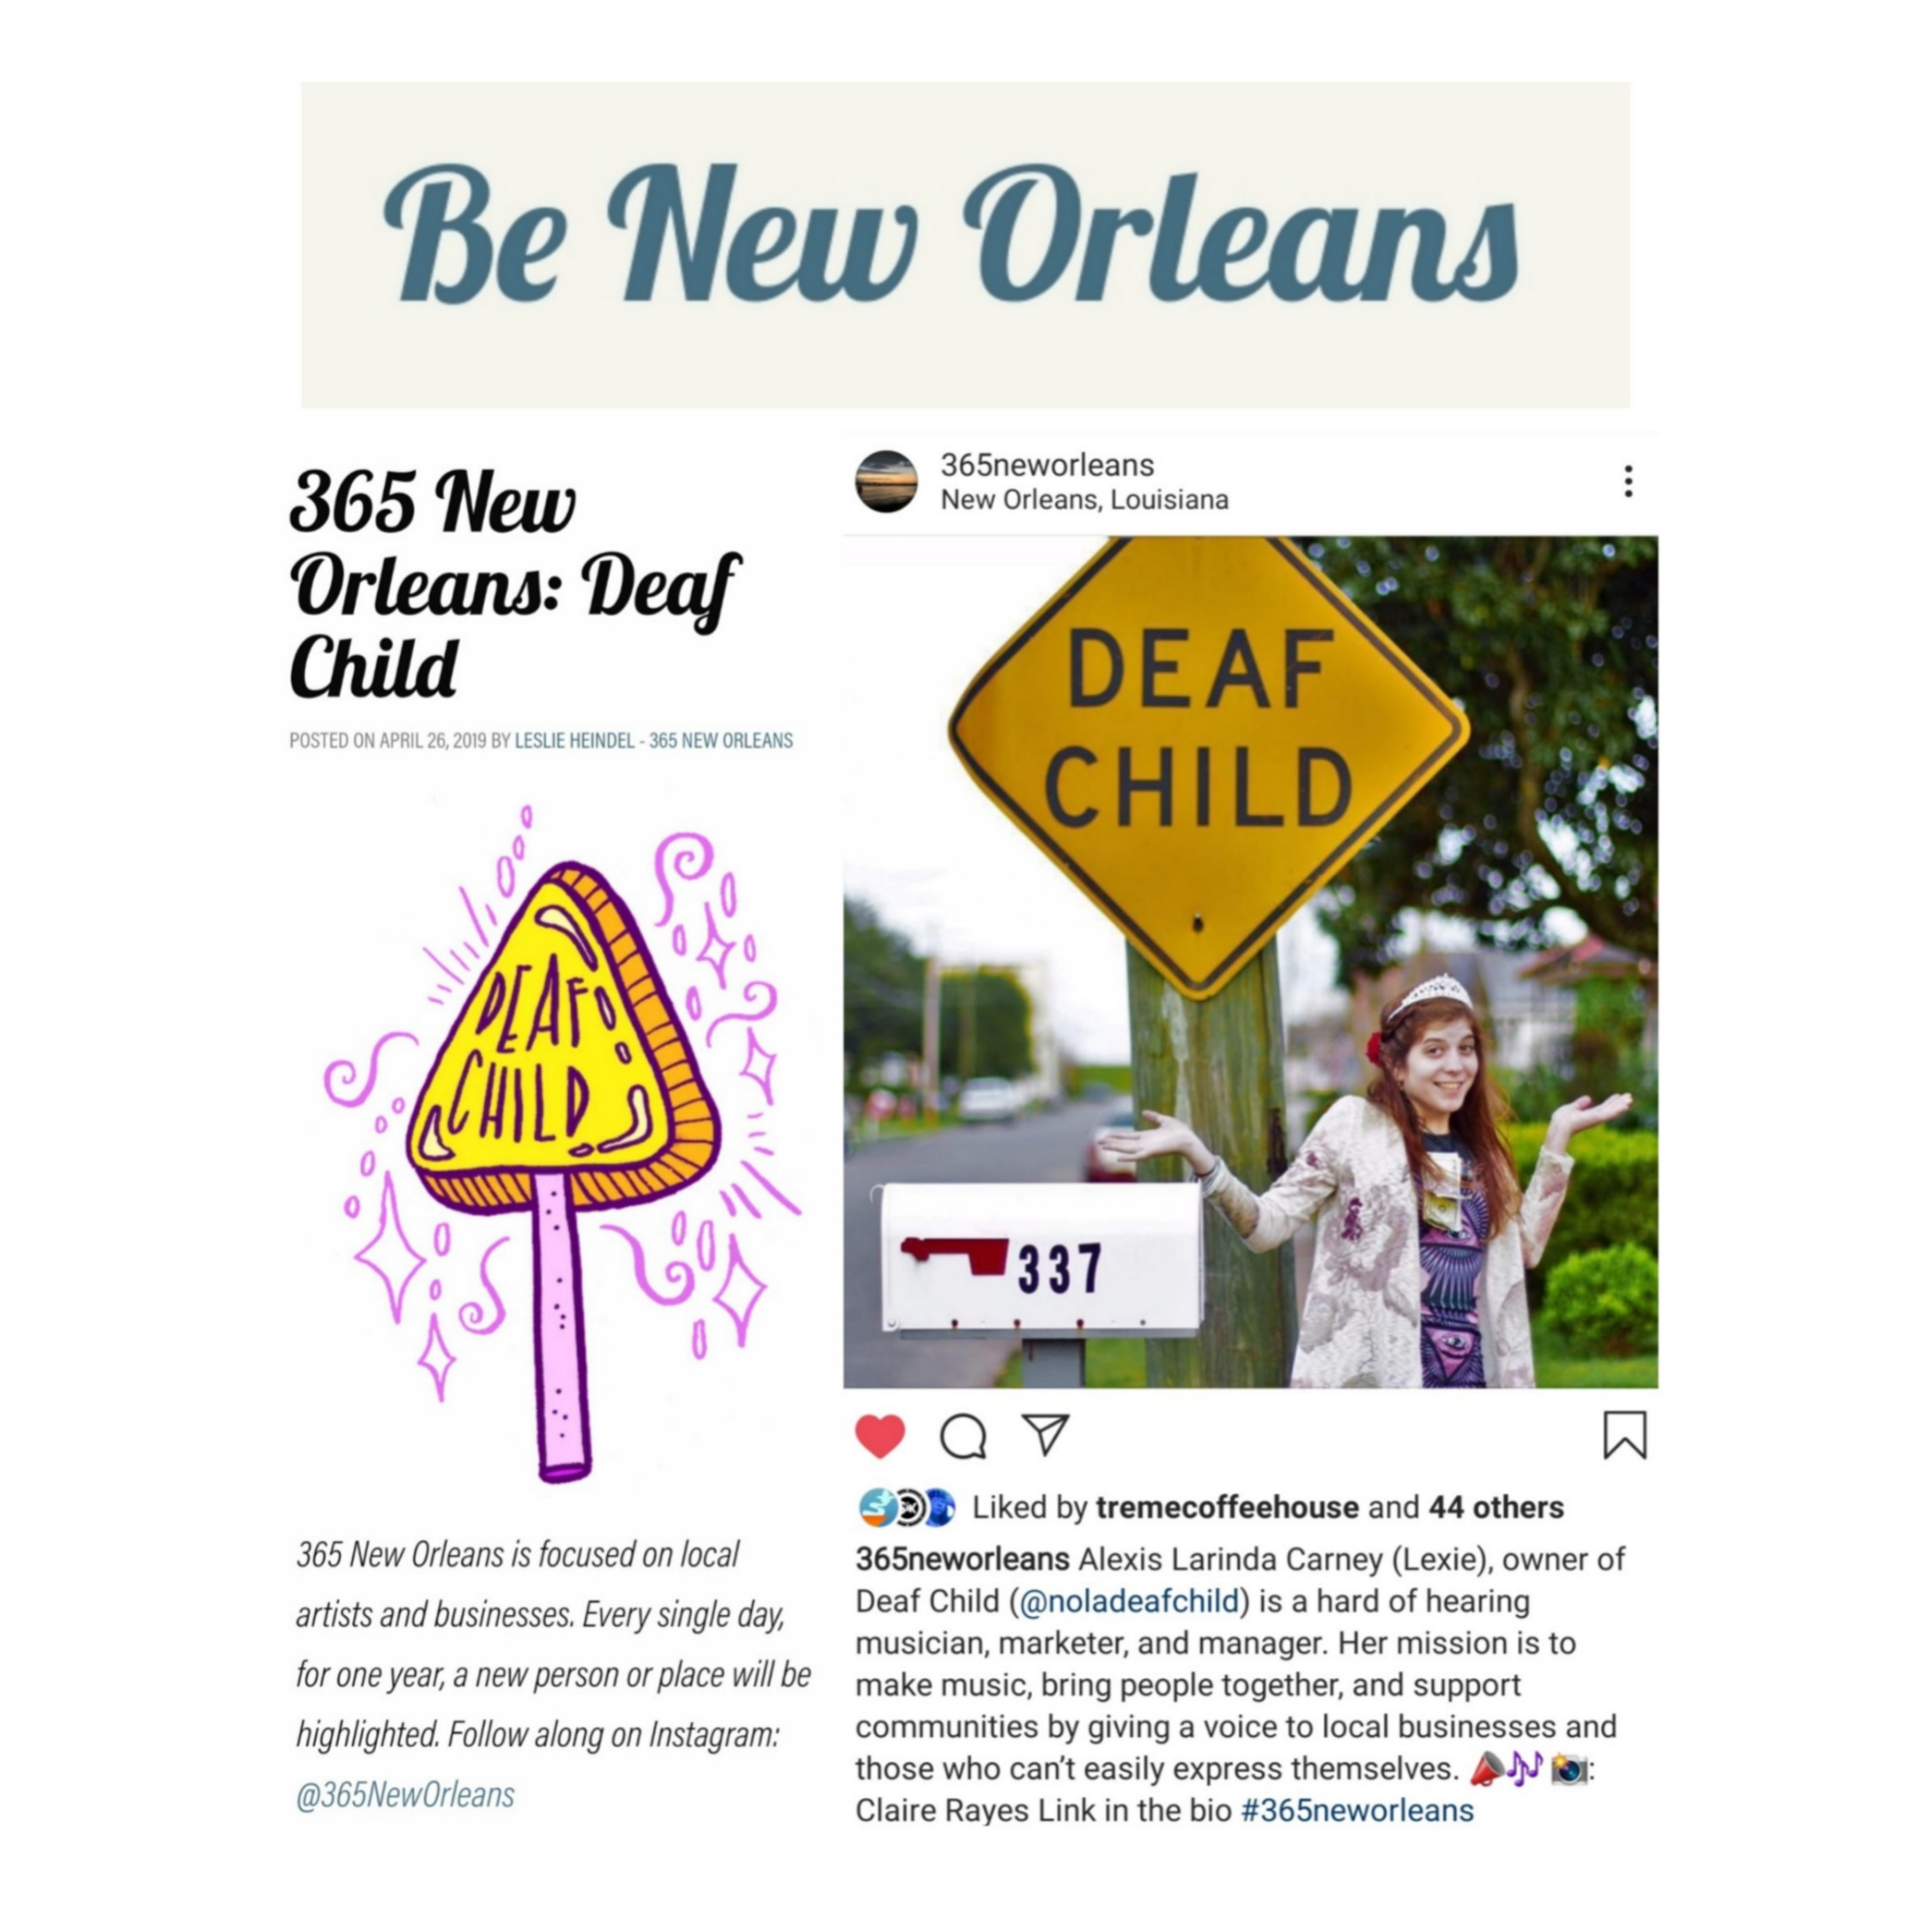 Be New Orleans 2019